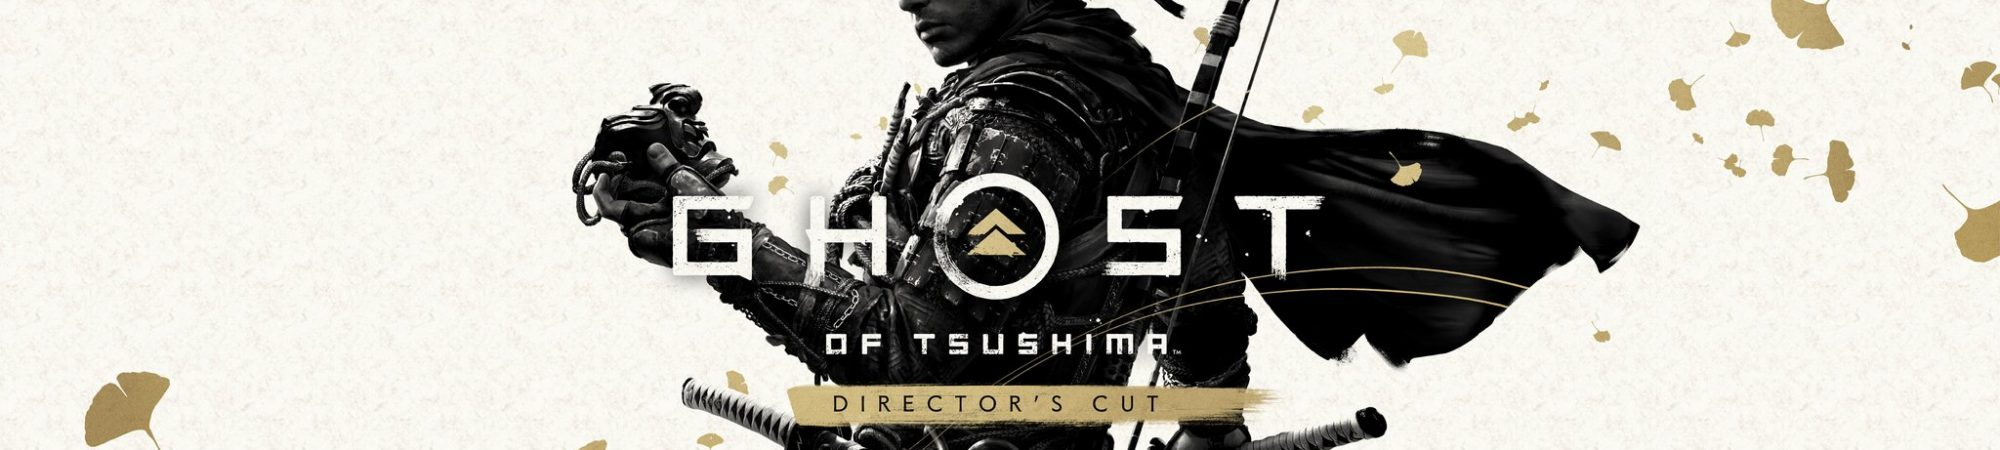 Review Ghost of Tsushima Director's Cut